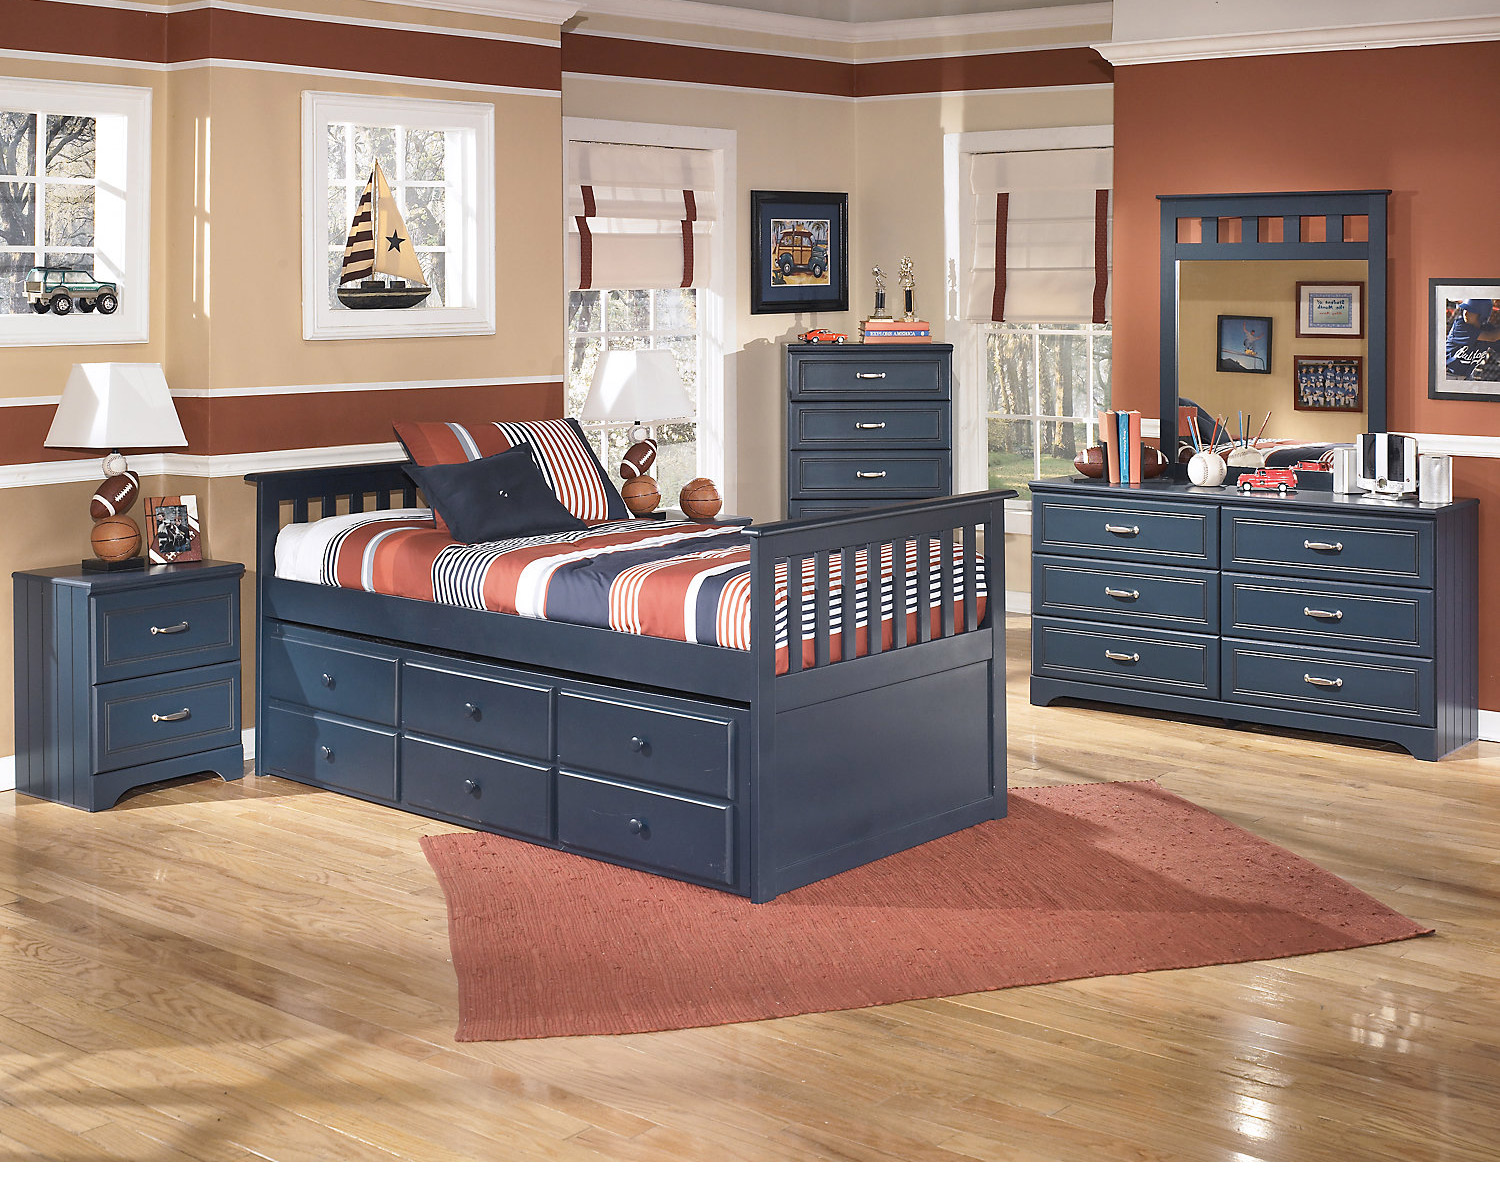 Navy Blue Furniture, Nautical Themed Kids Room